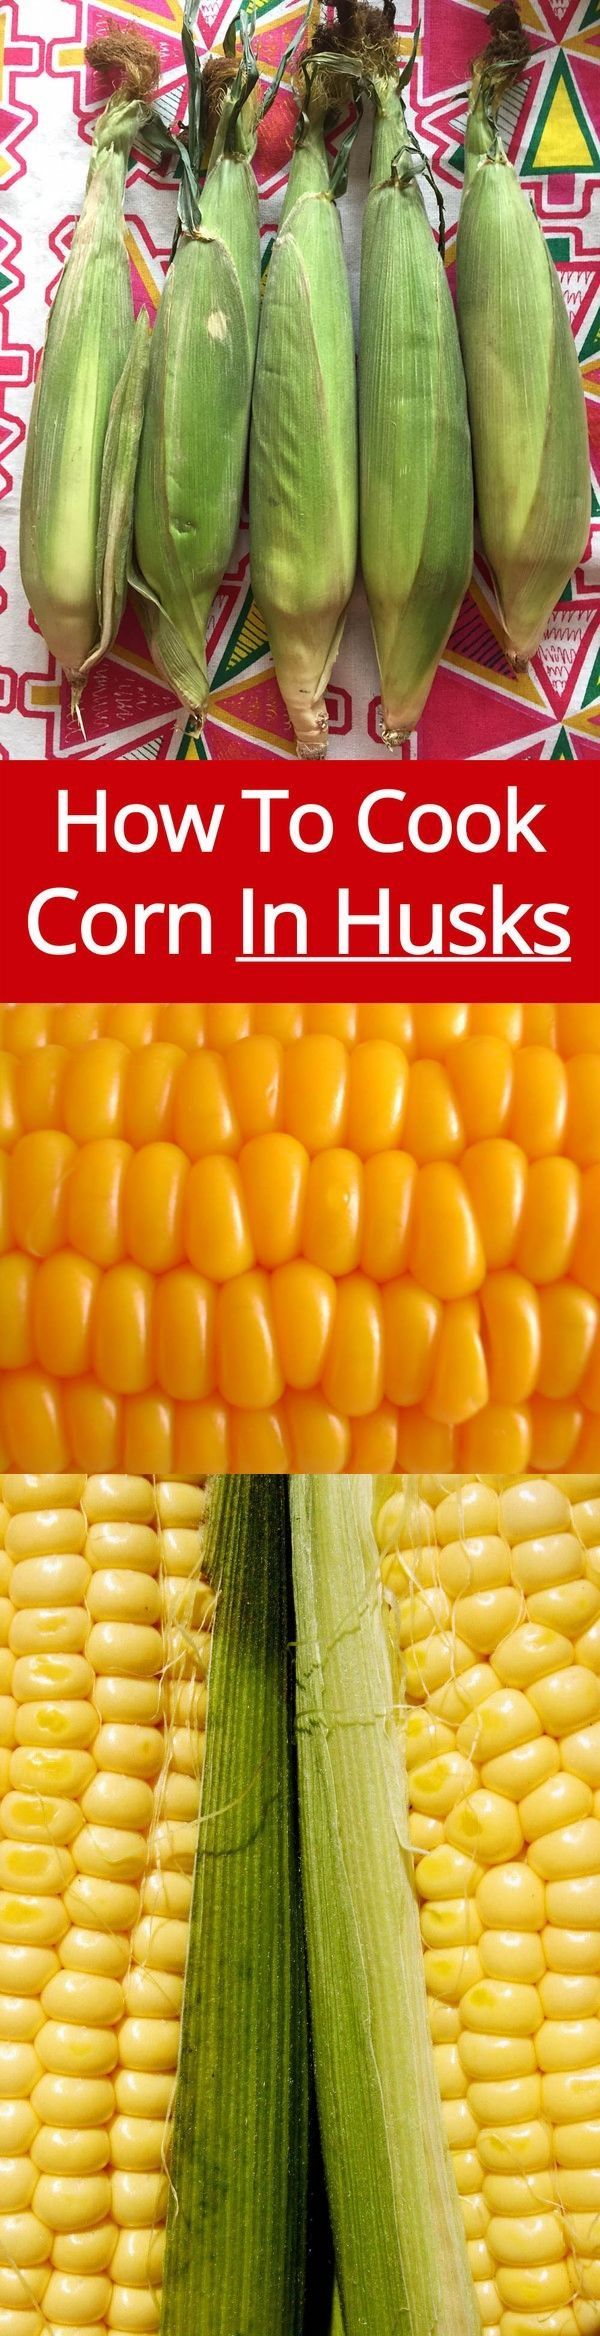 How To Cook Corn In A Husk In A Microwave